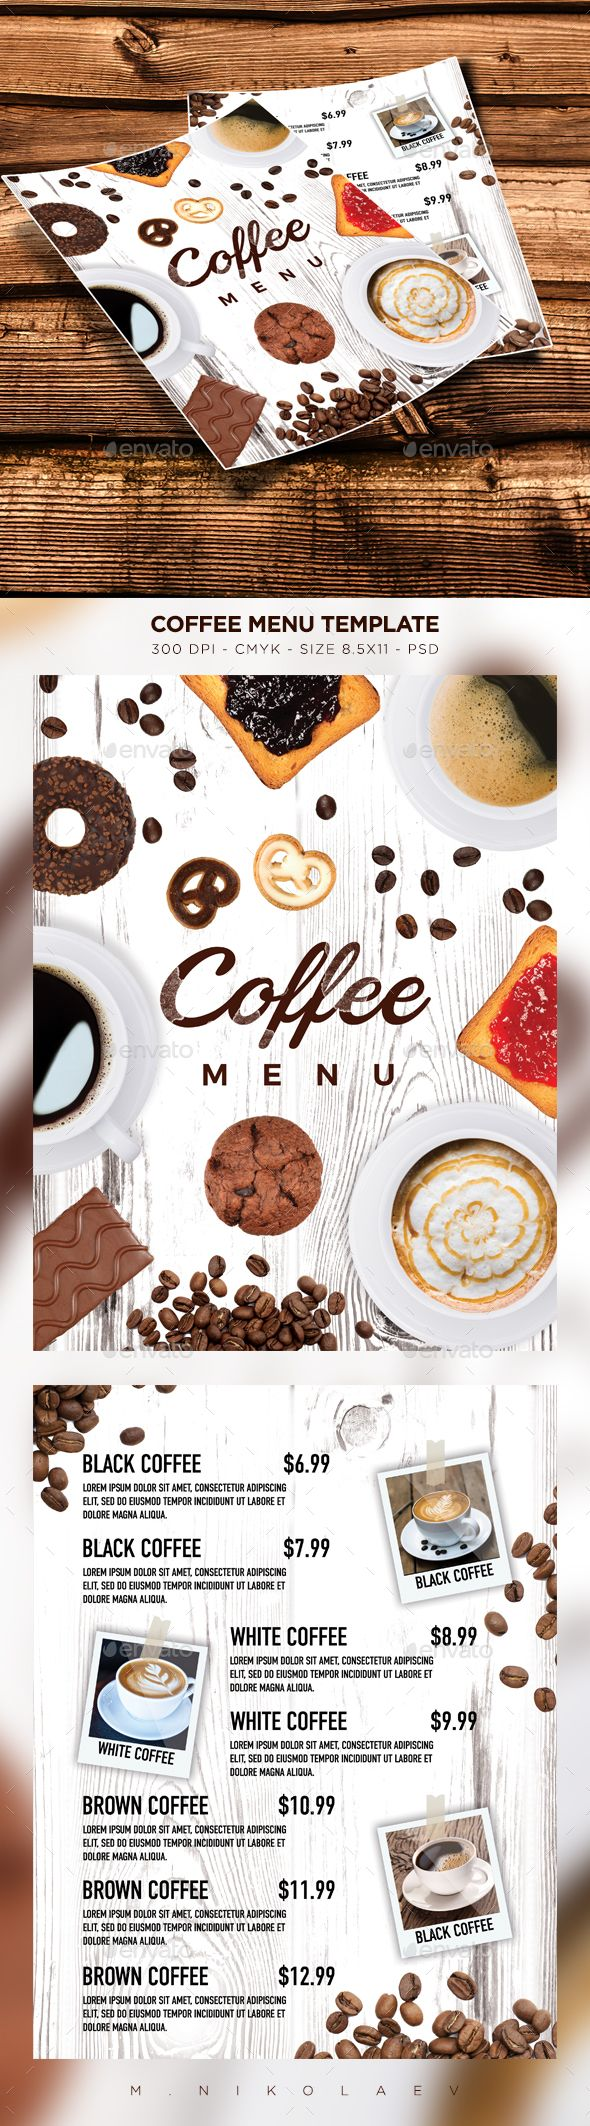 Coffee Menu Template PSD. Download here: https://graphicriver.net/item/coffee-menu/17508720?ref=ksioks